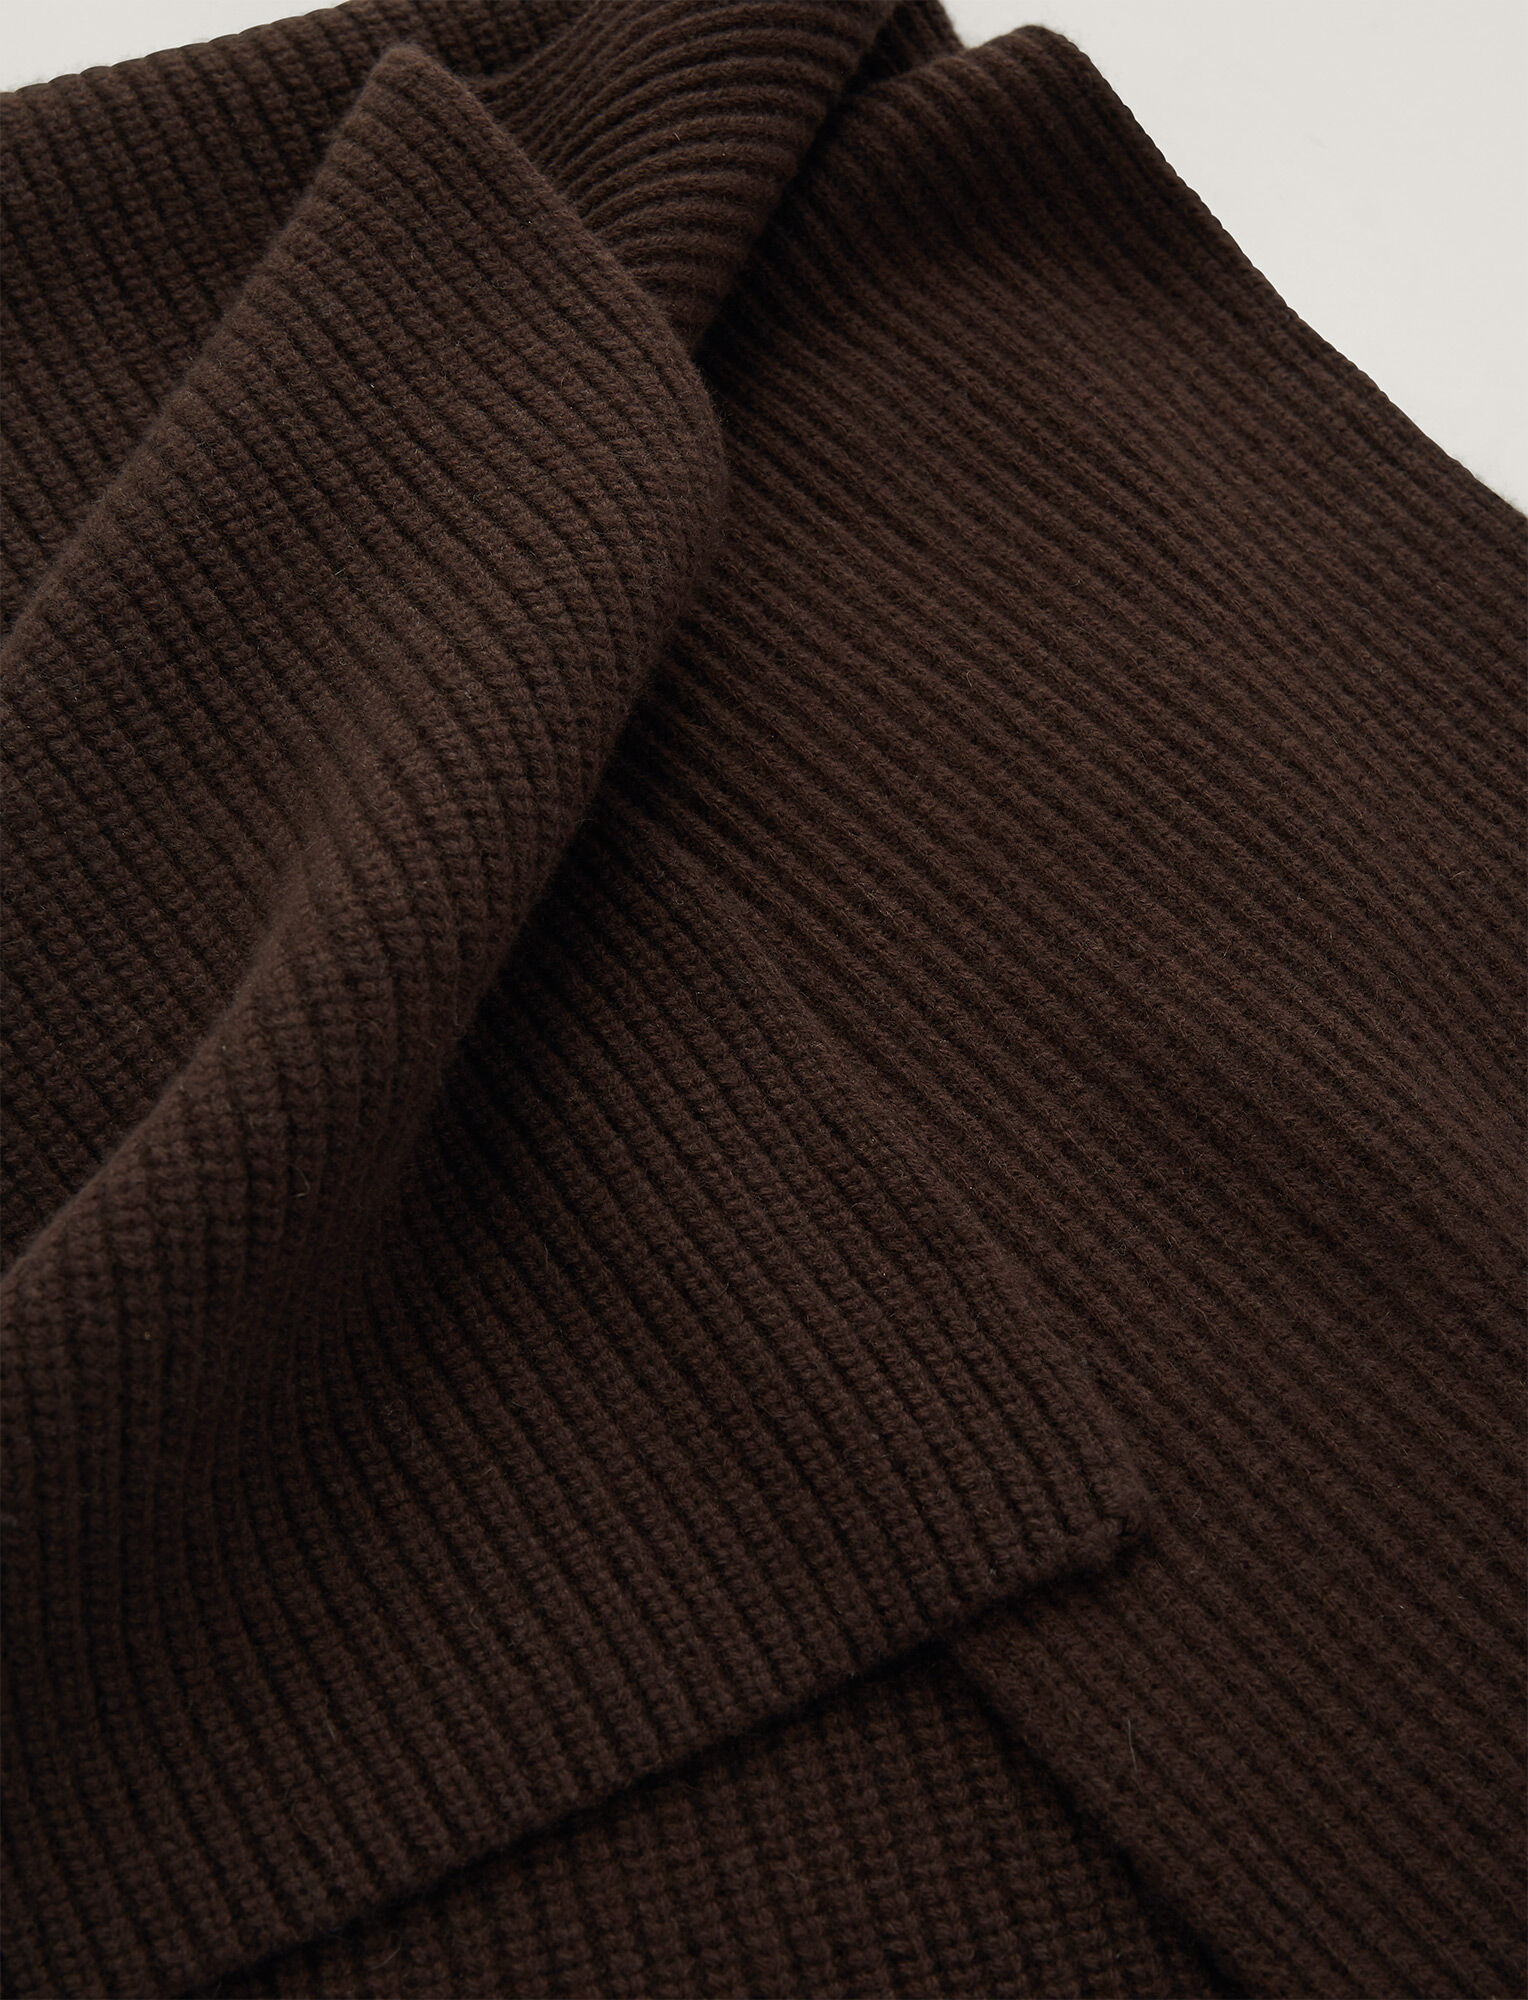 Joseph, Luxe Cashmere Scarf, in Chocolate